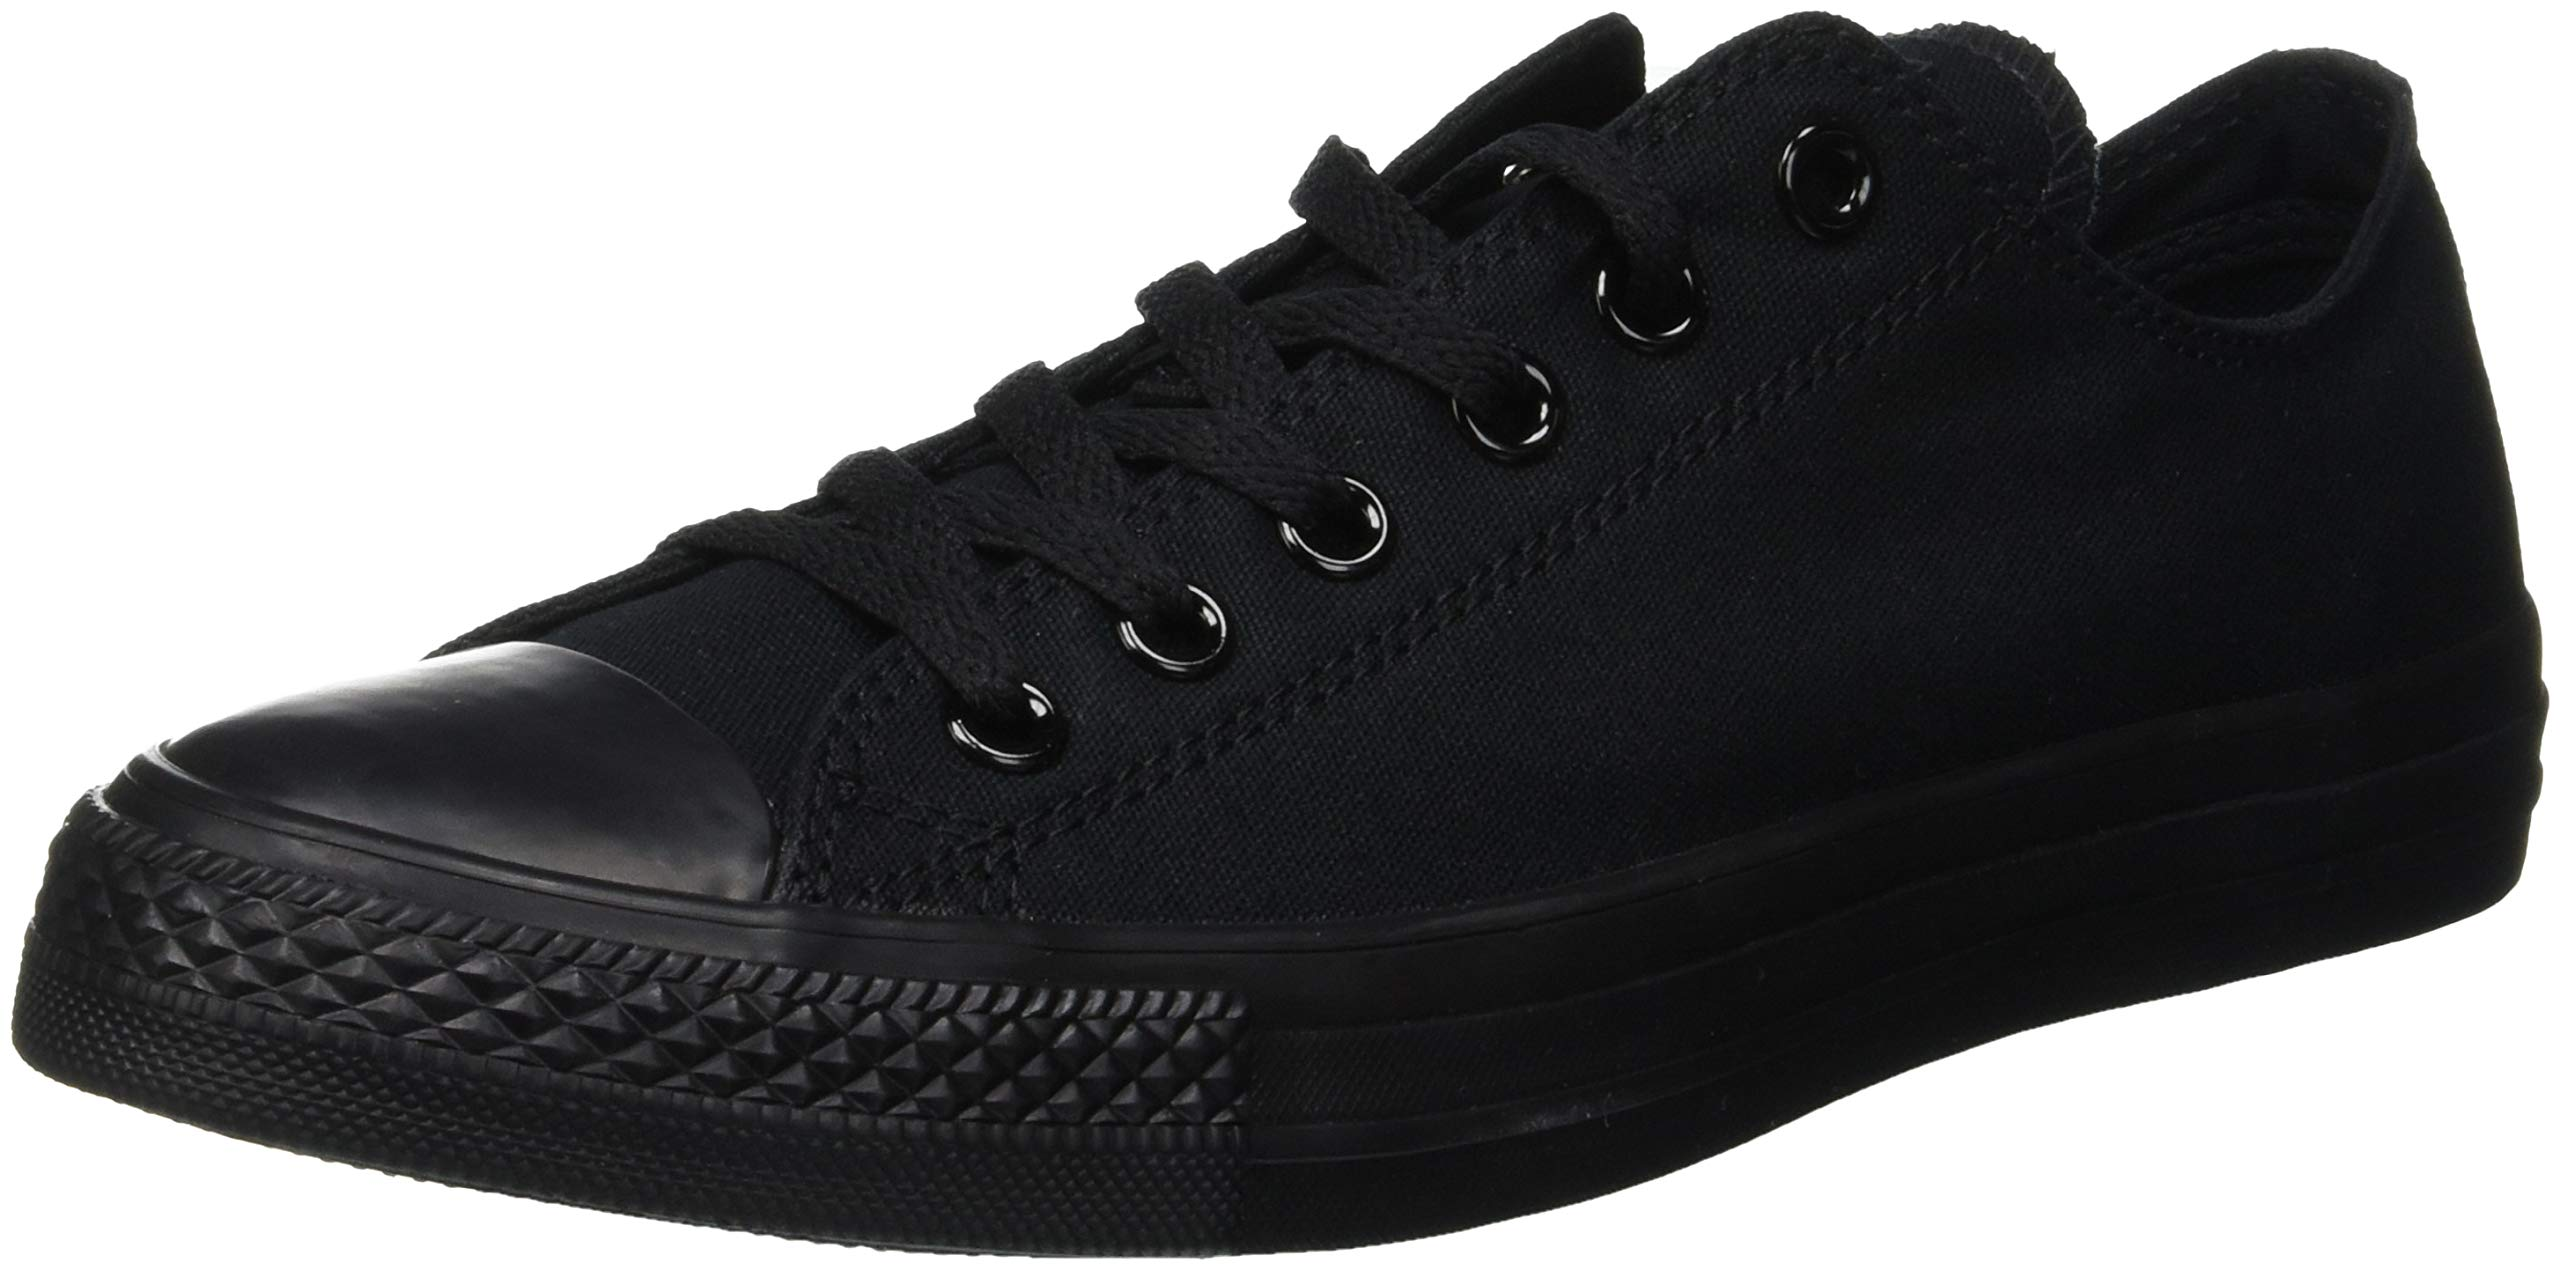 Converse Womens All Star Ox Low Chuck Taylor Chucks Sneaker Trainer - Black Mono - 5.5